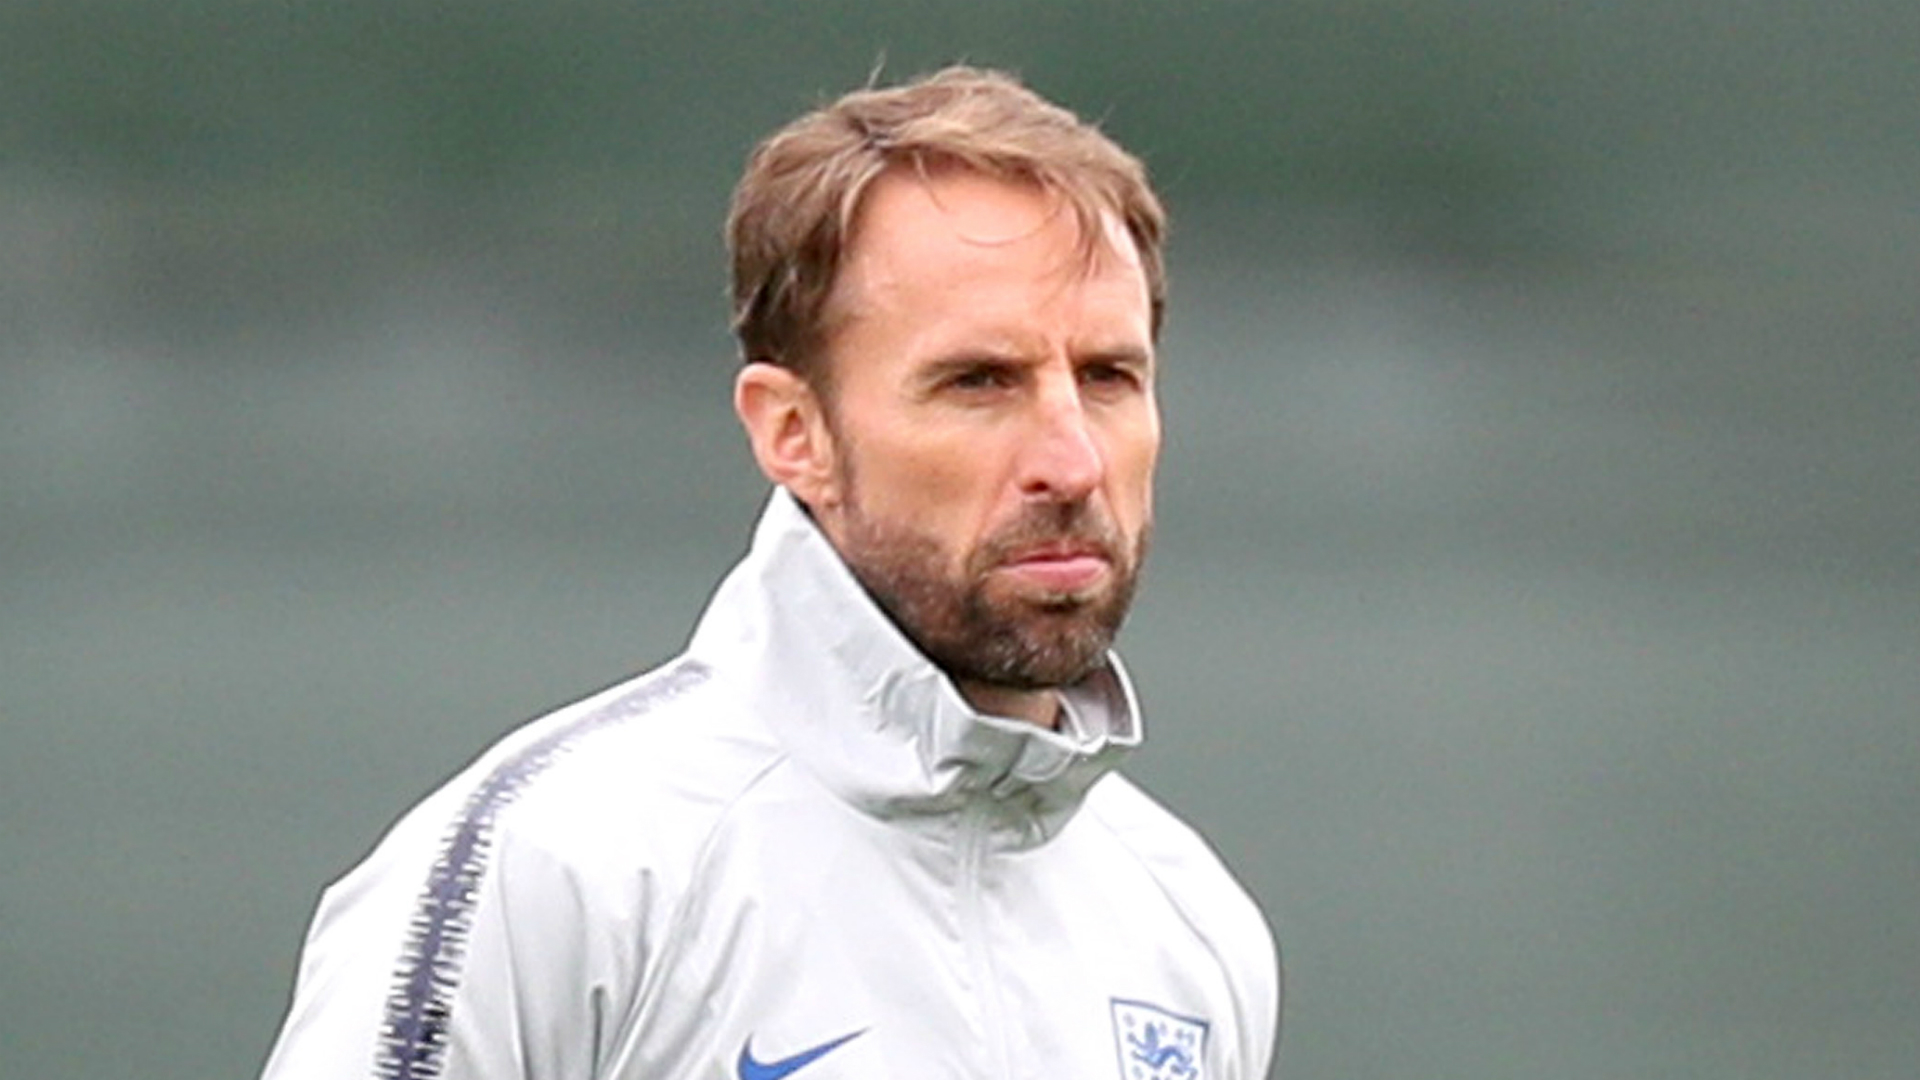 Nervous England fans hopeful ahead of World Cup knockout match against Colombia